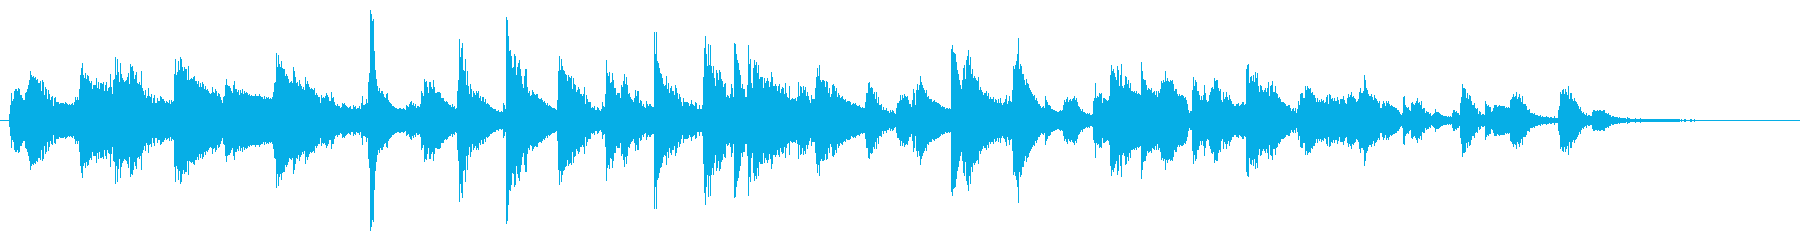 Somewhere comical and fantastic jazz piano's reproduced waveform